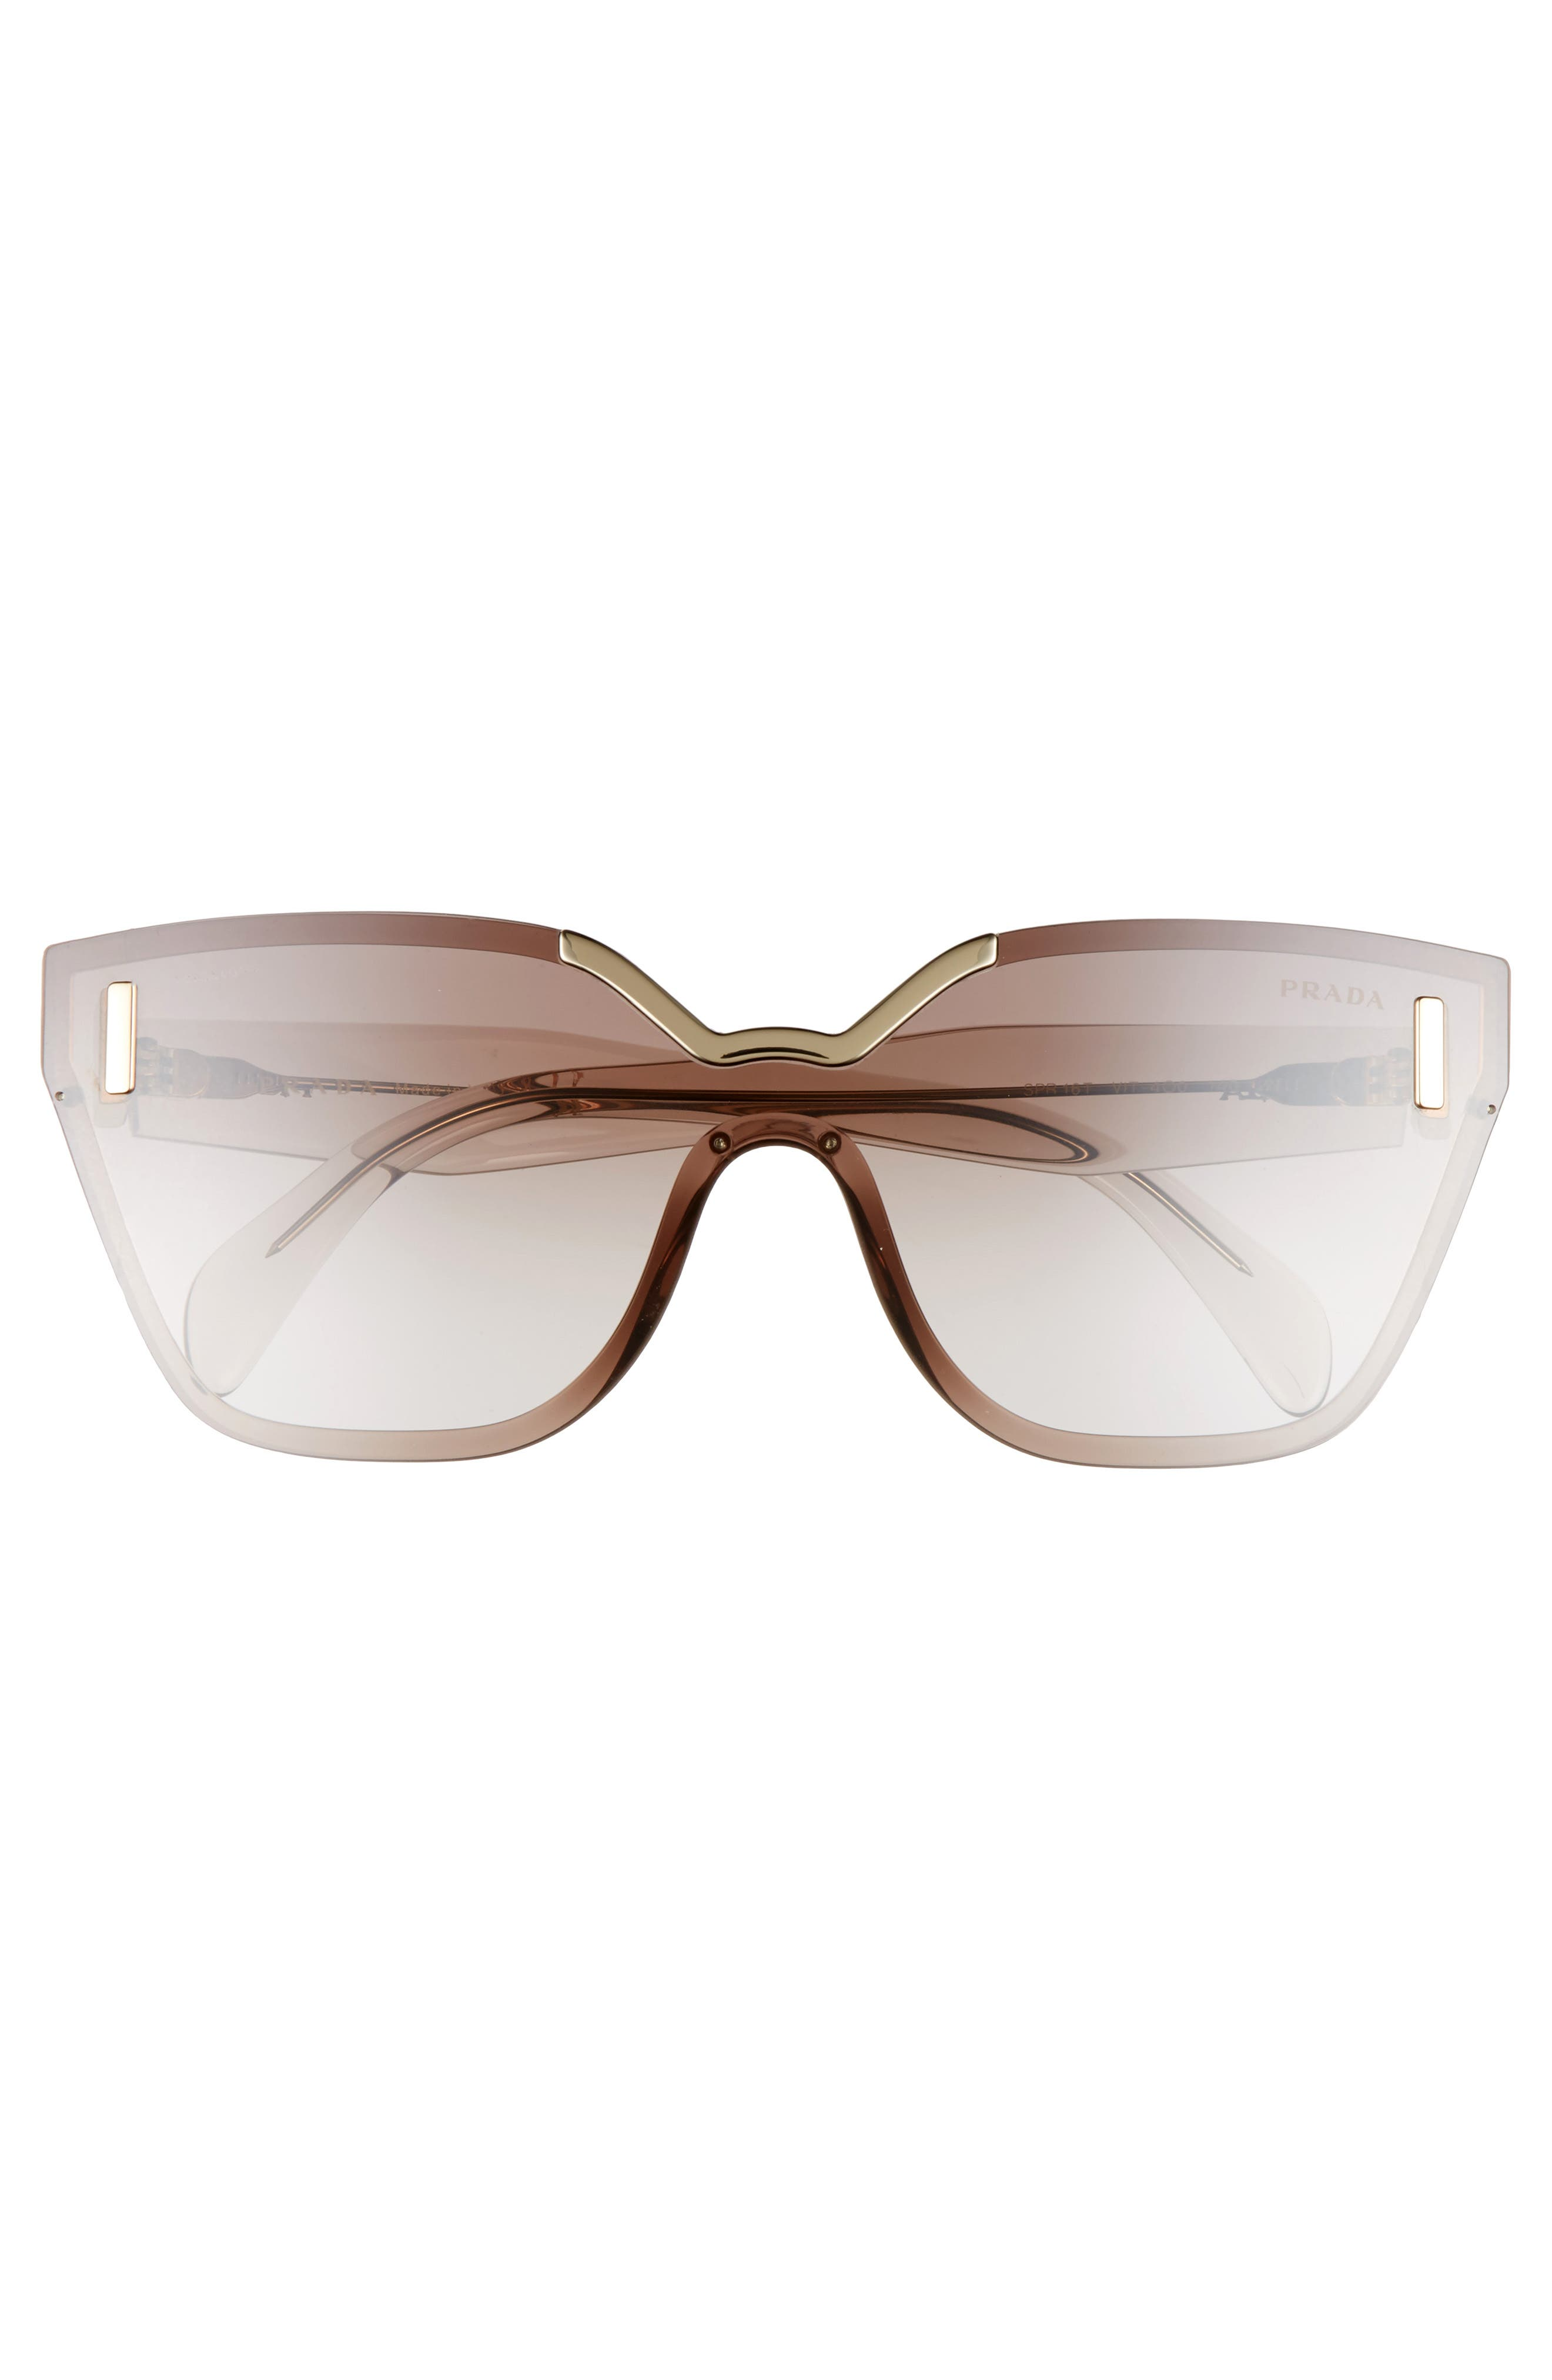 61mm Mirrored Shield Sunglasses,                             Alternate thumbnail 2, color,                             Brown Mirror